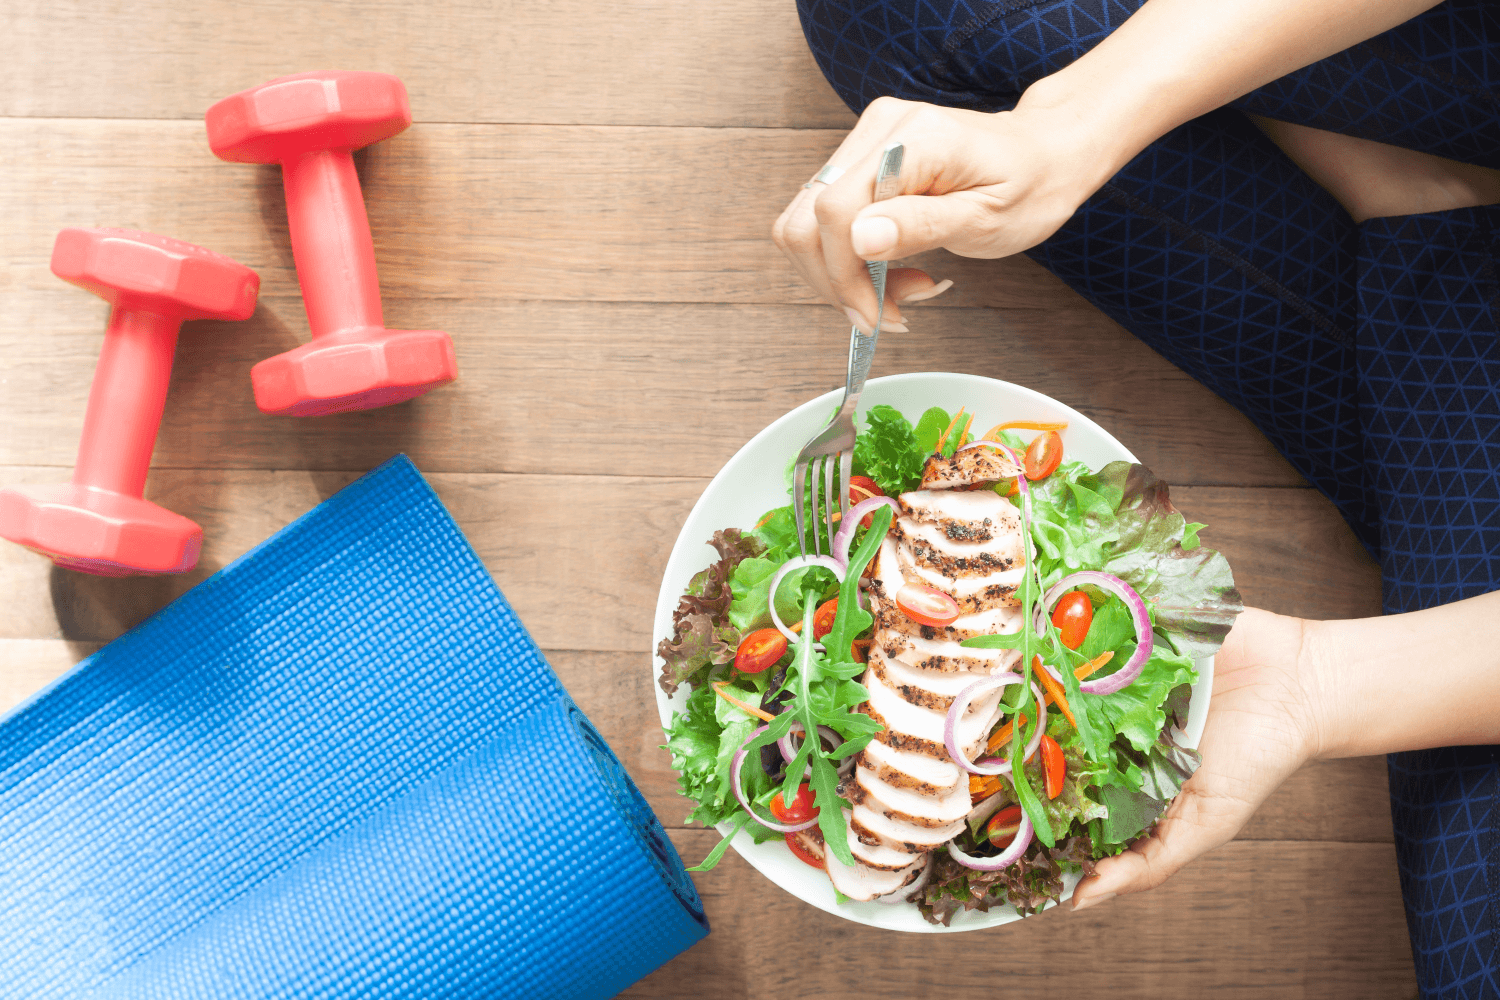 Healthy Eating Habits: Where To Start